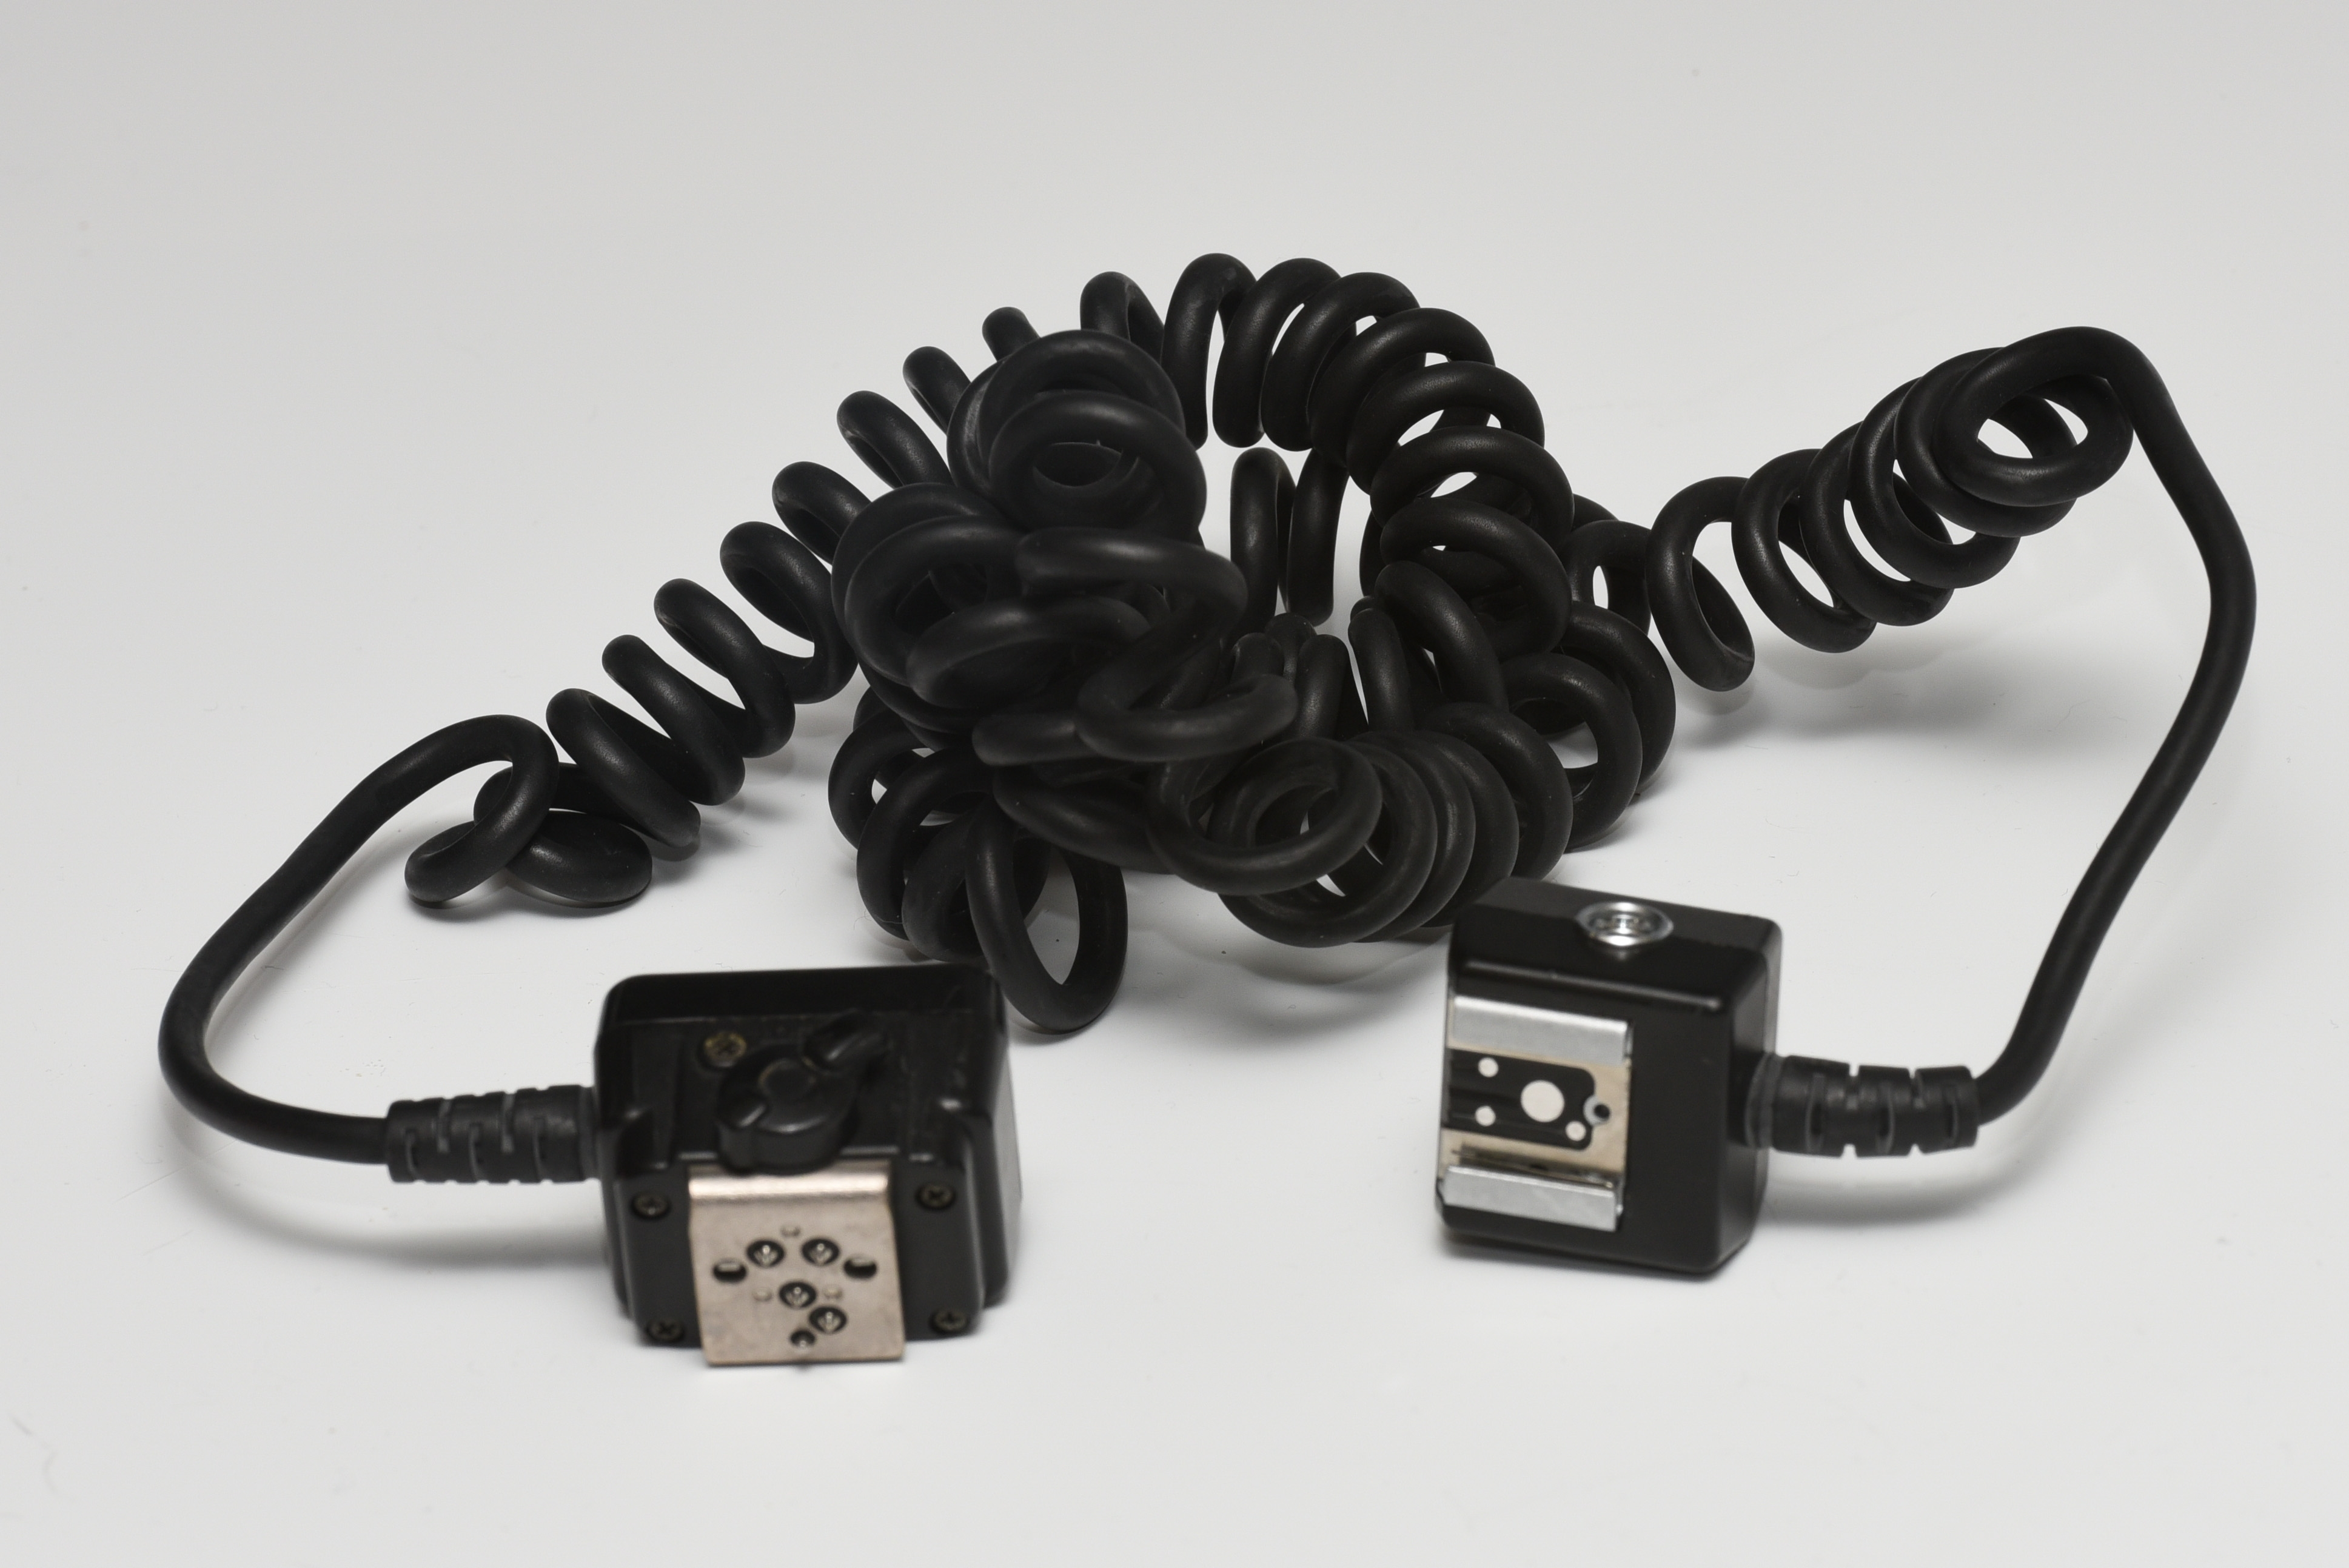 Cable for Off-Camera Flash